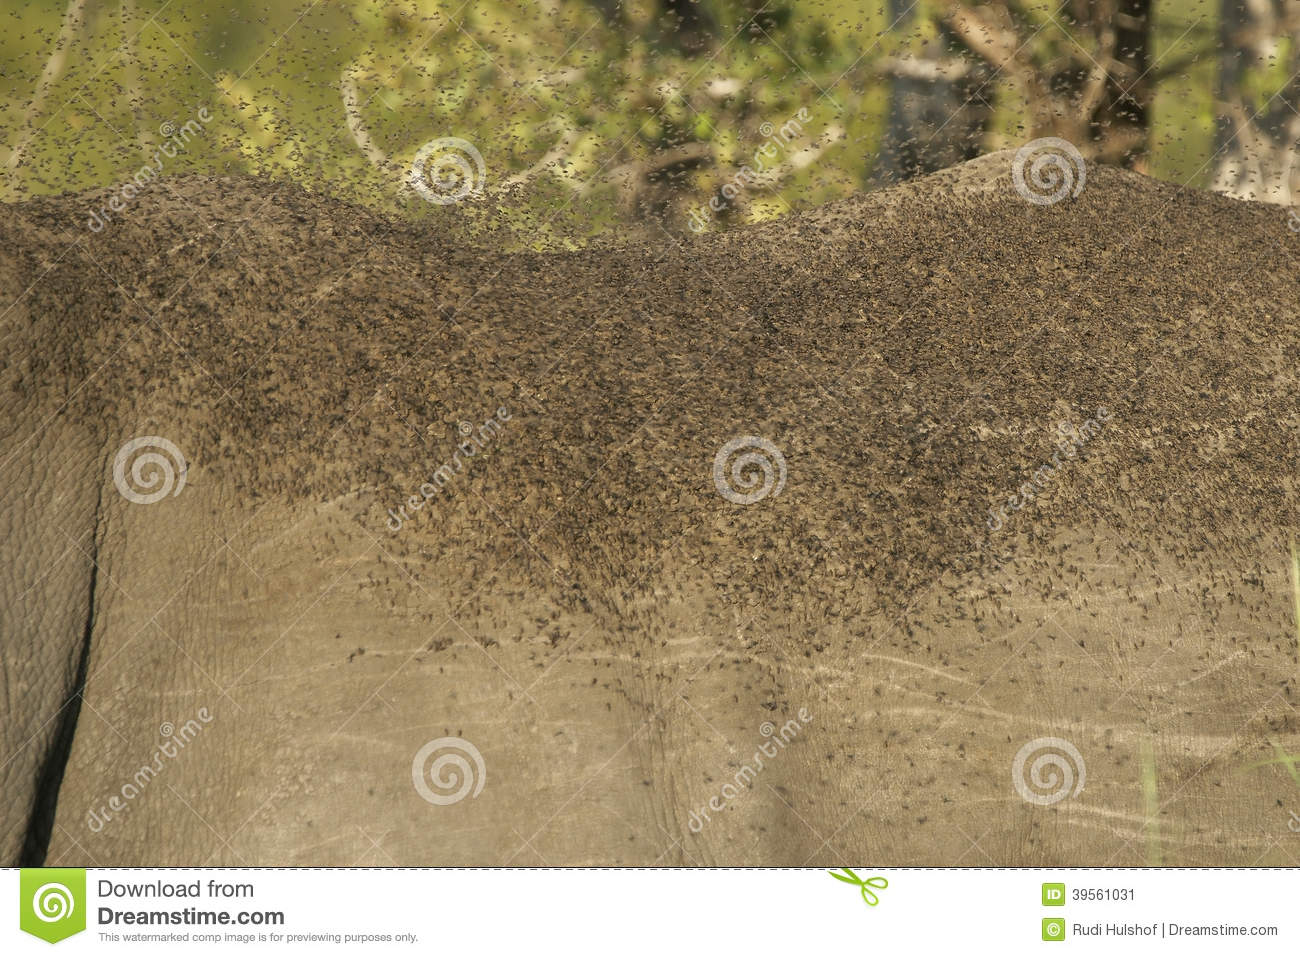 Fly plague on Rhino stock image  Image of eating, outdoors